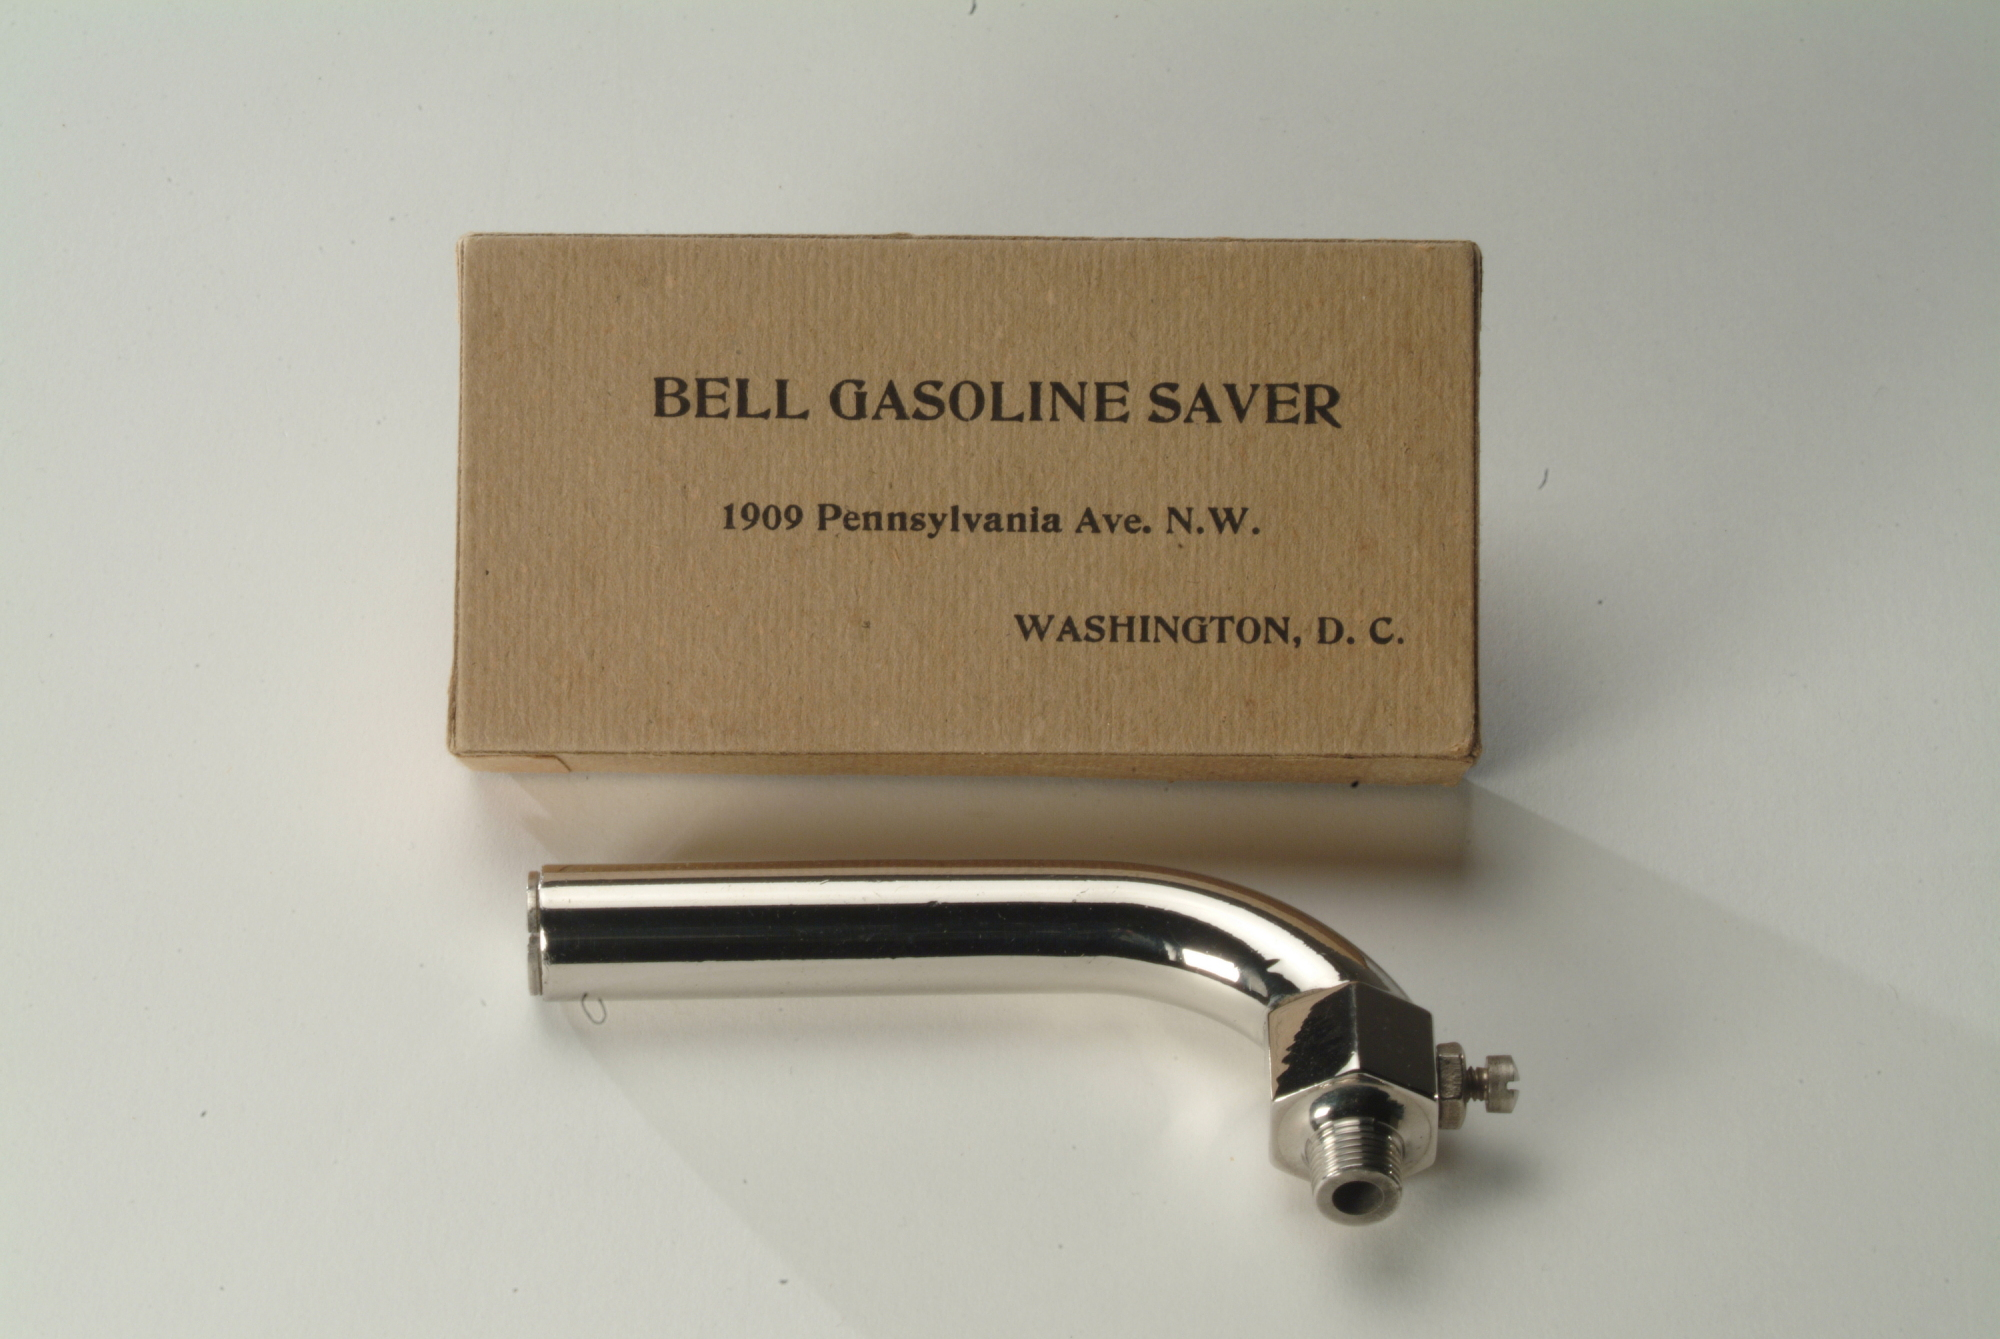 Bell Gasoline Saver, about 1920